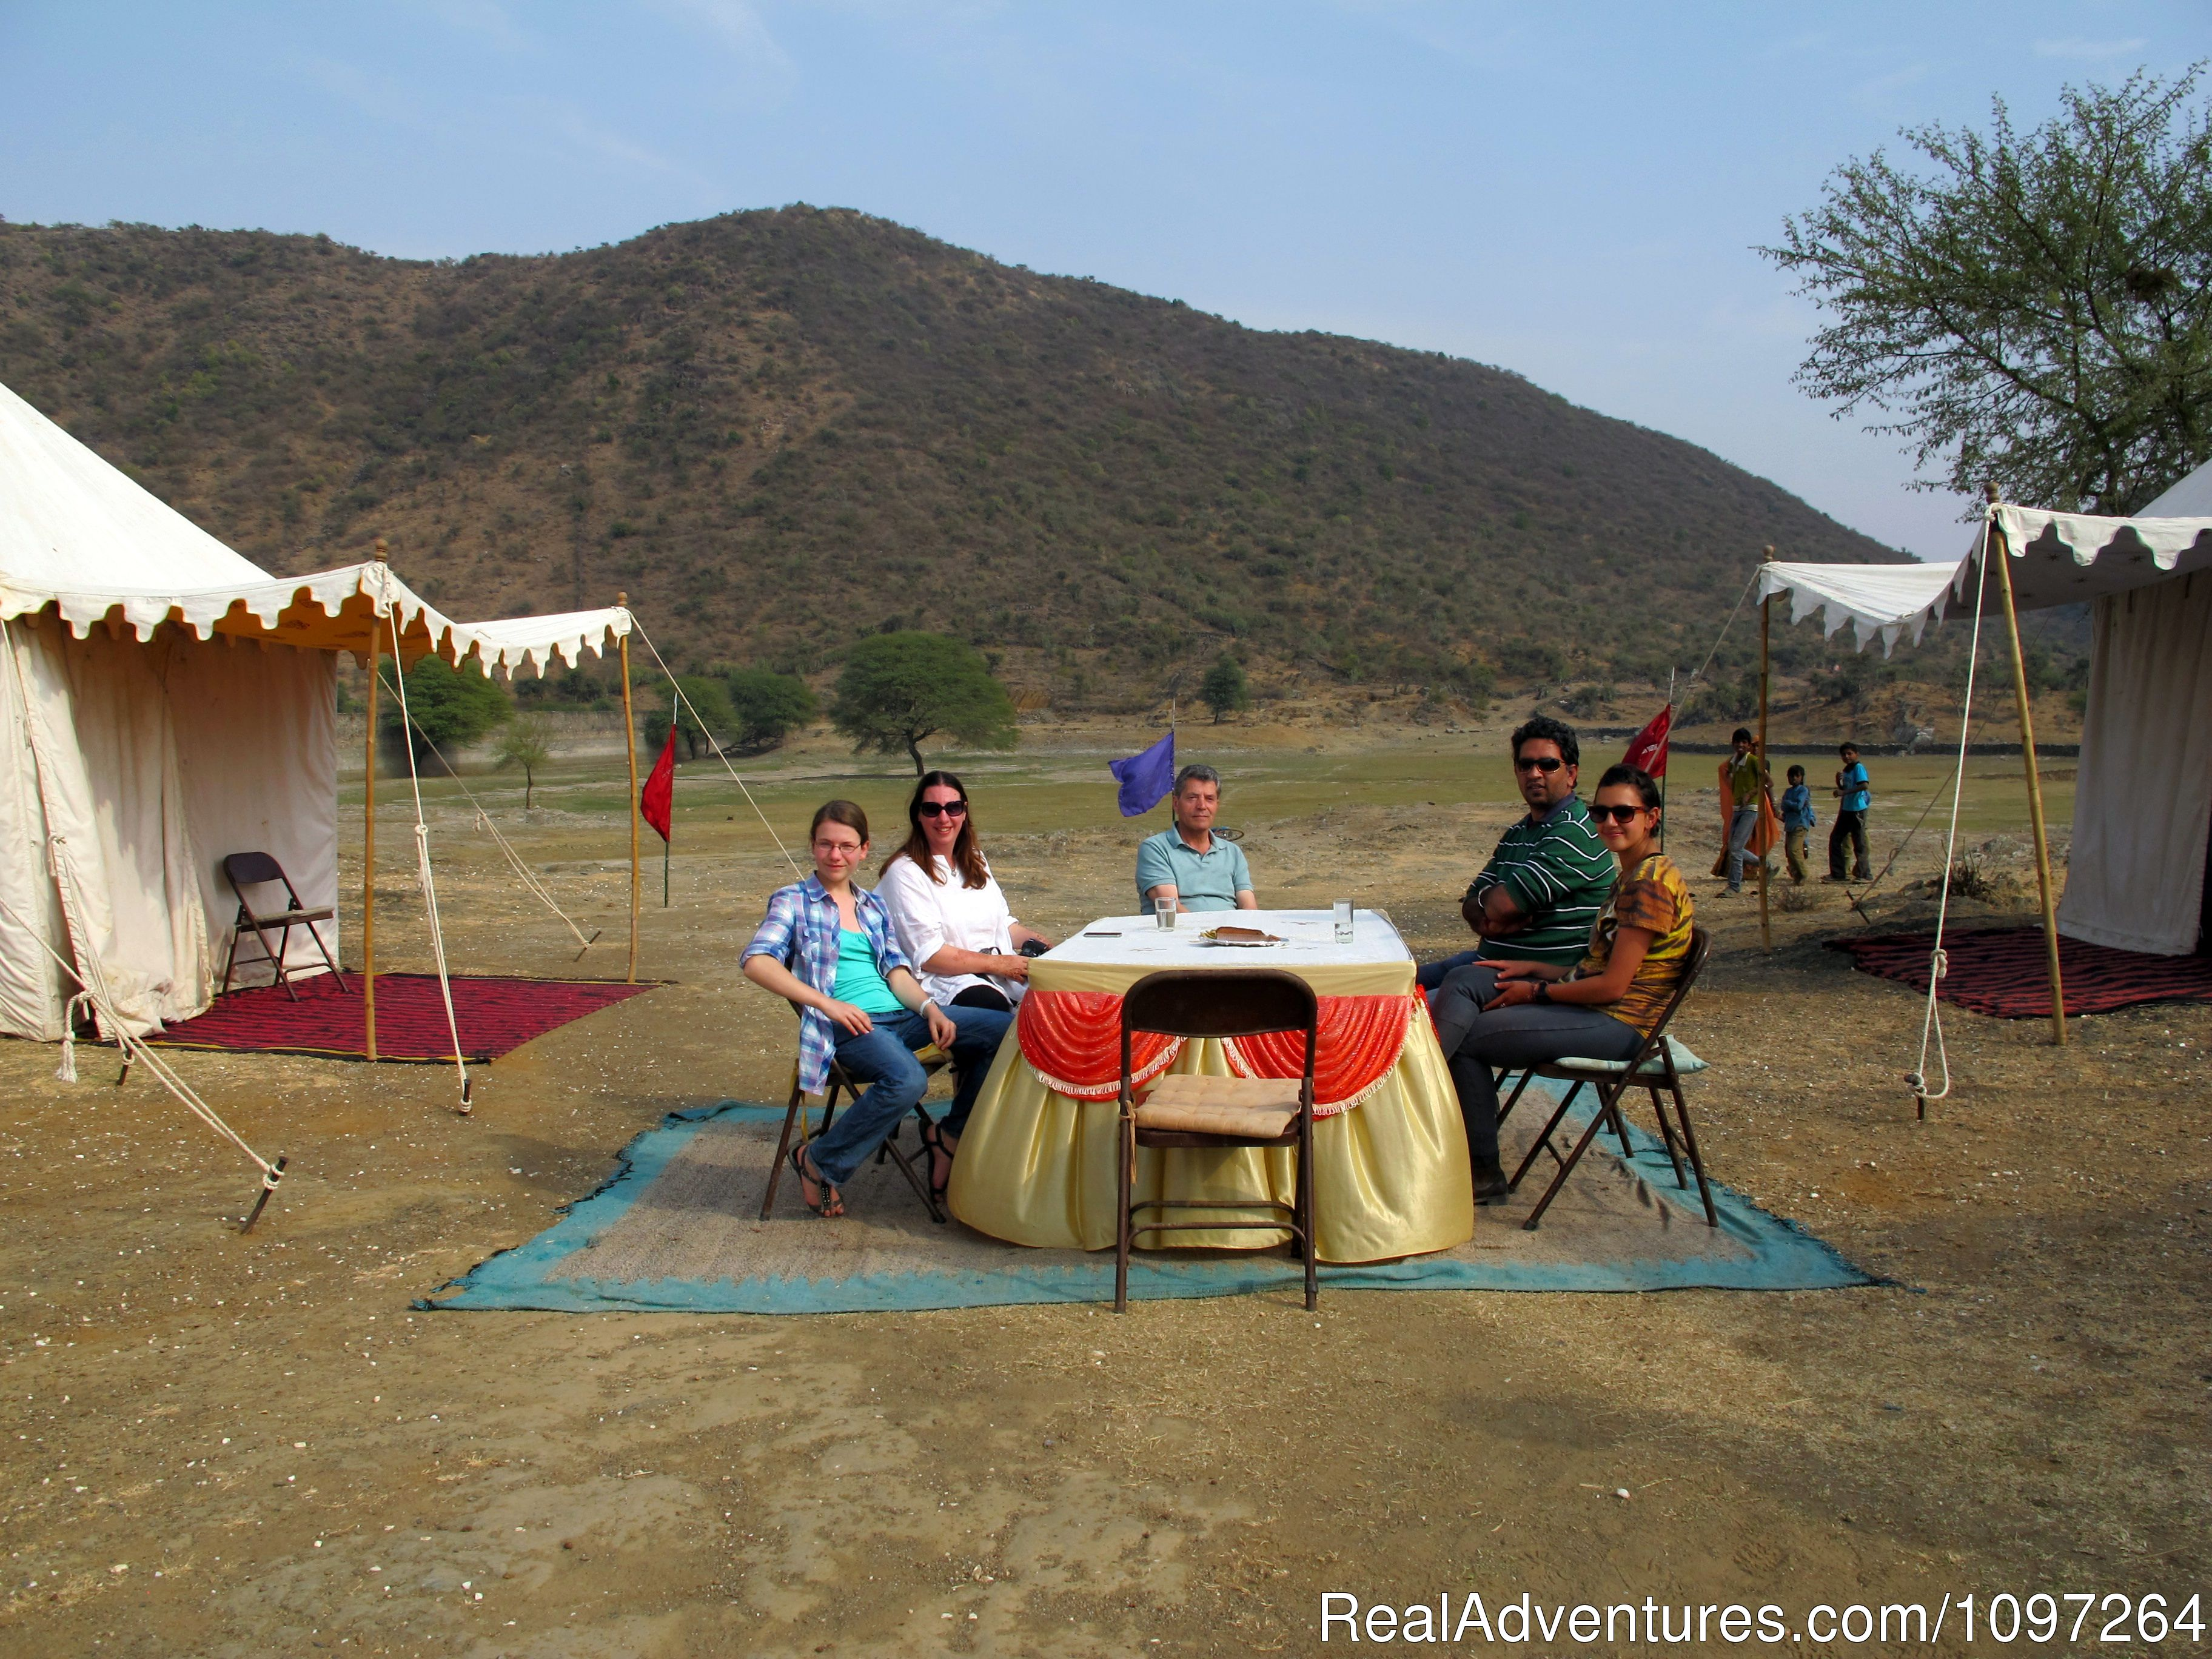 Our Safari Camp